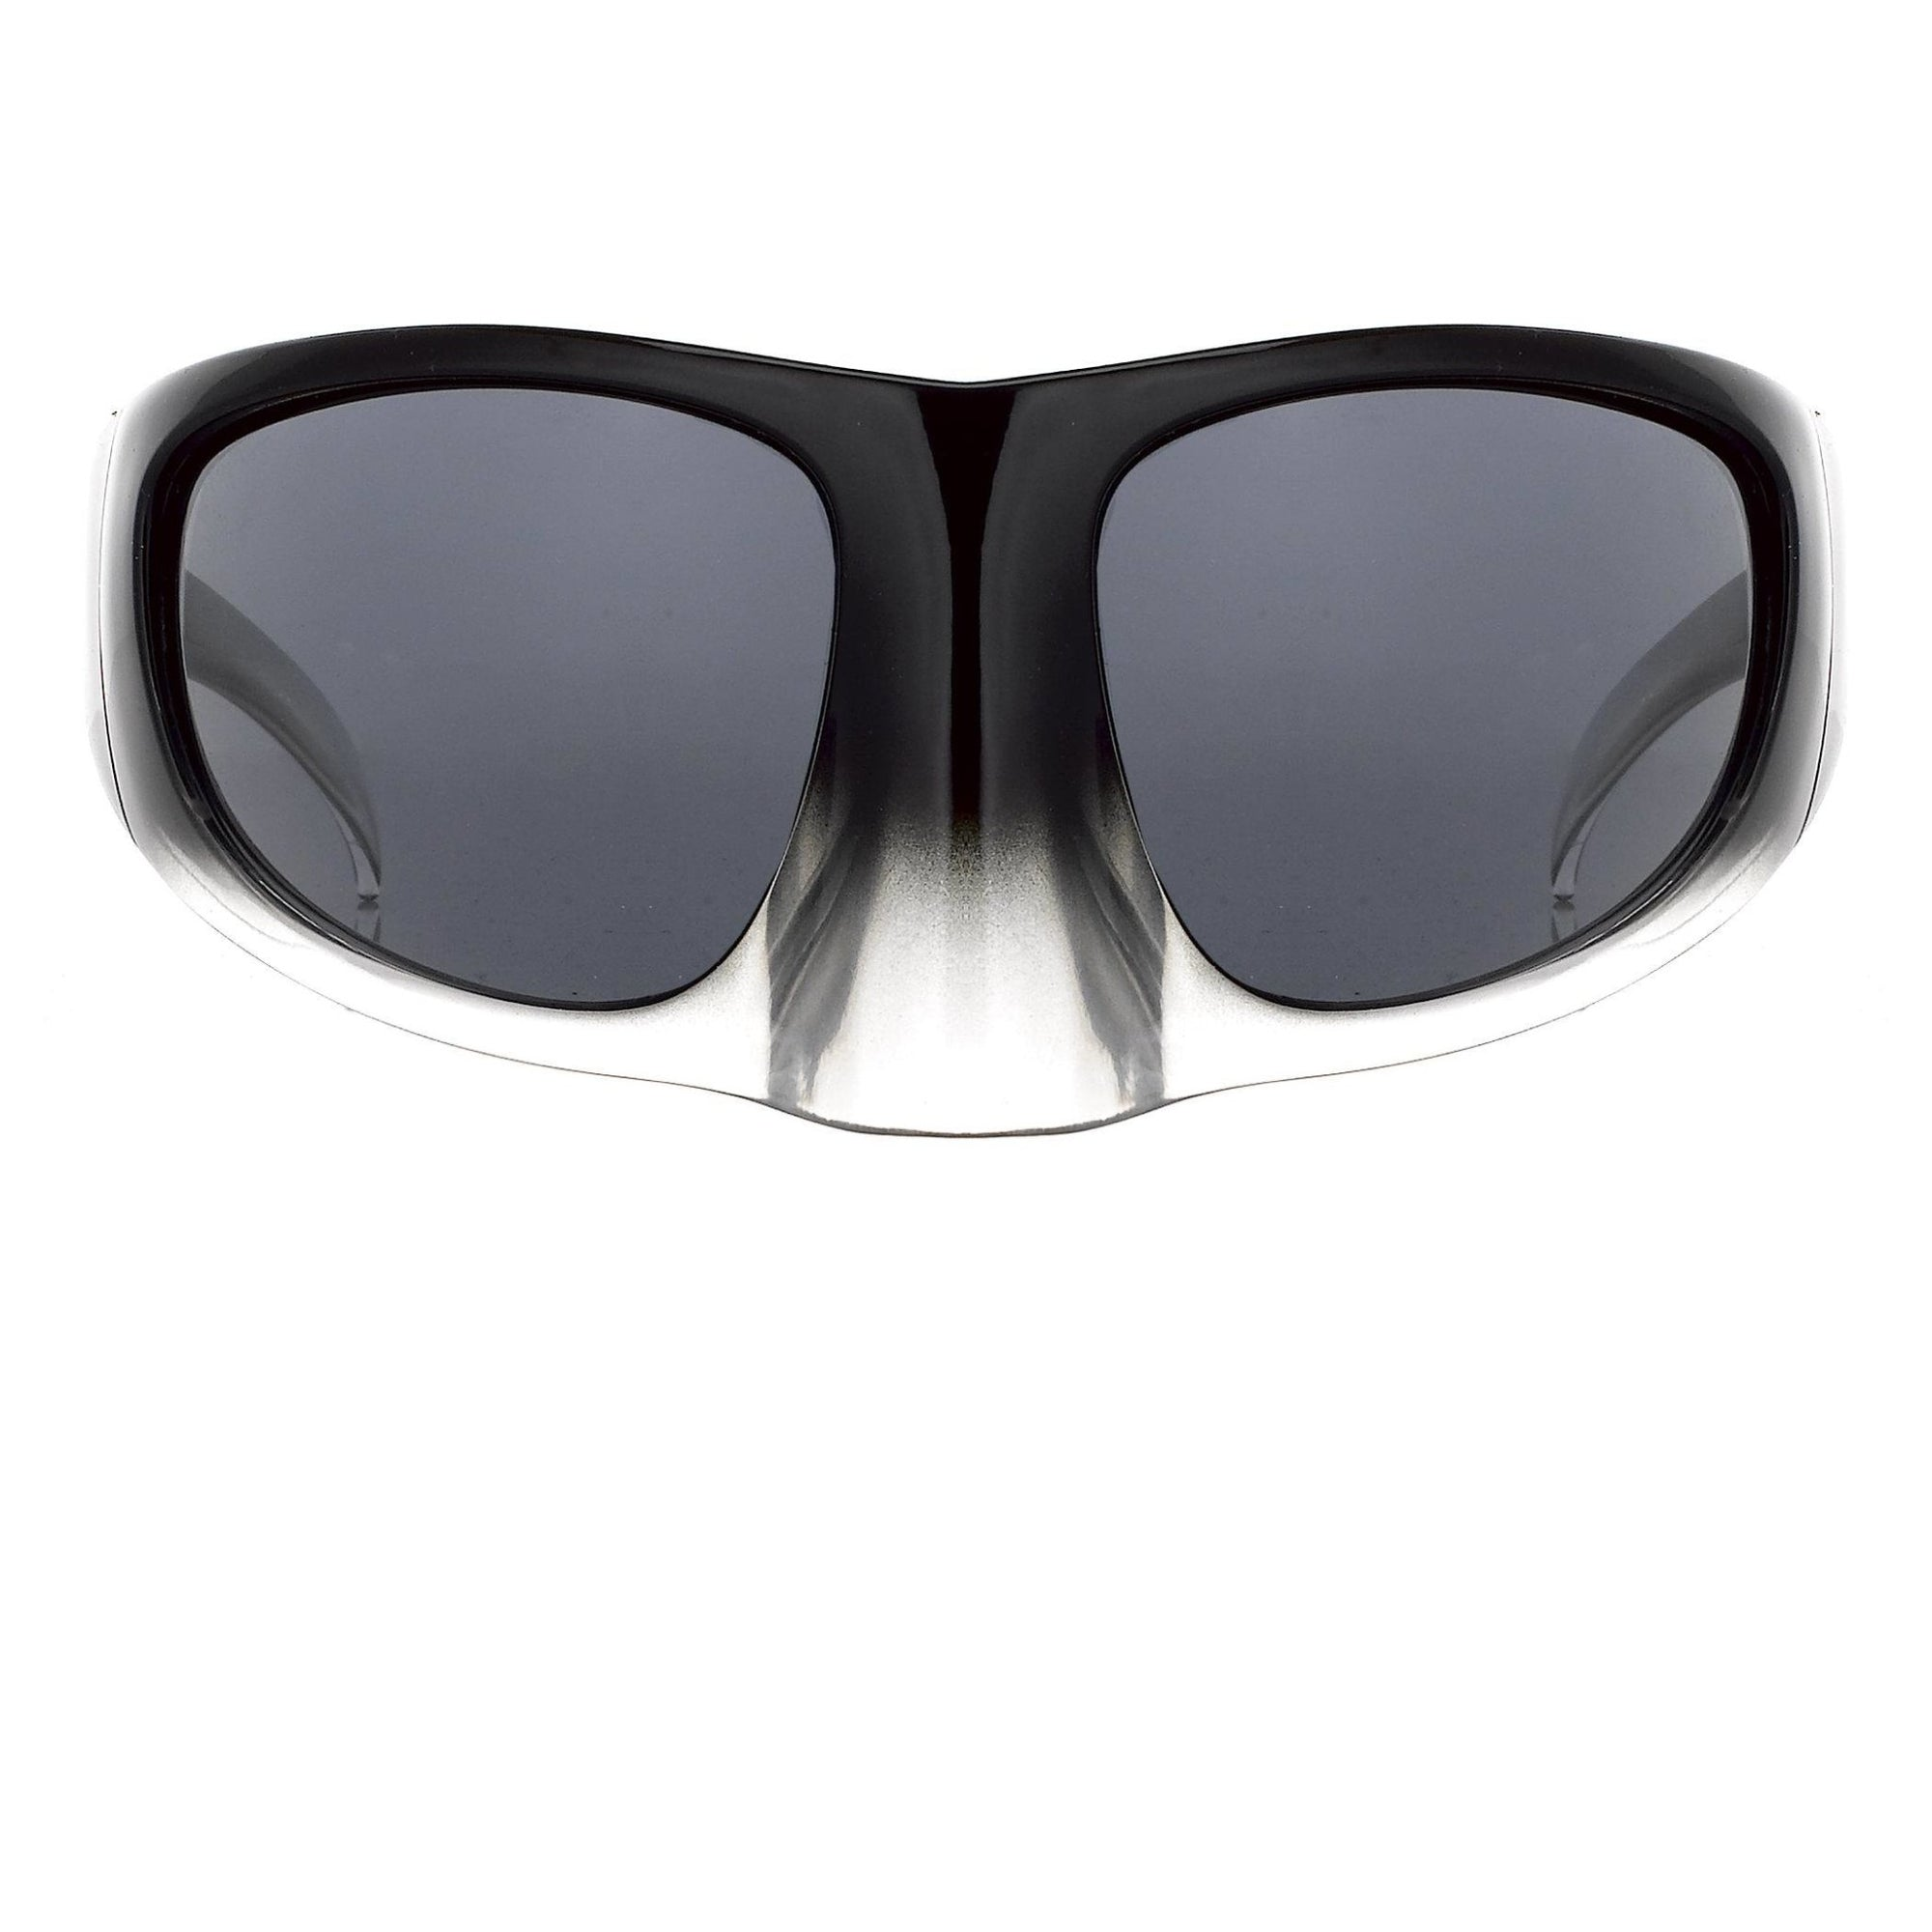 Bernhard Willhelm Sunglasses Black Clear Mask With Grey Lenses 8BW3C10BLACKCLEAR - Watches & Crystals